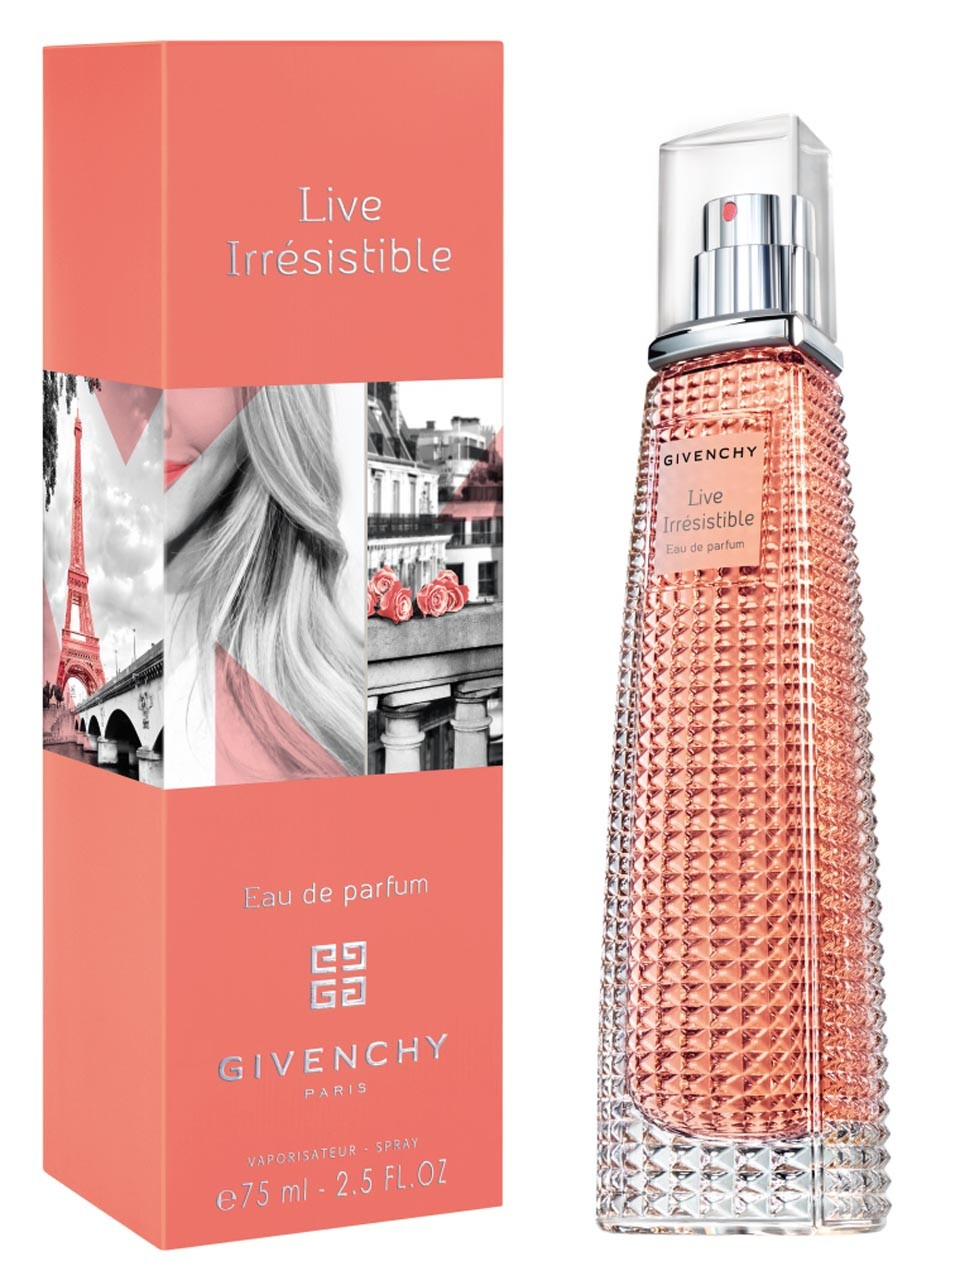 112 Версия Givenchy - Live Irresistible